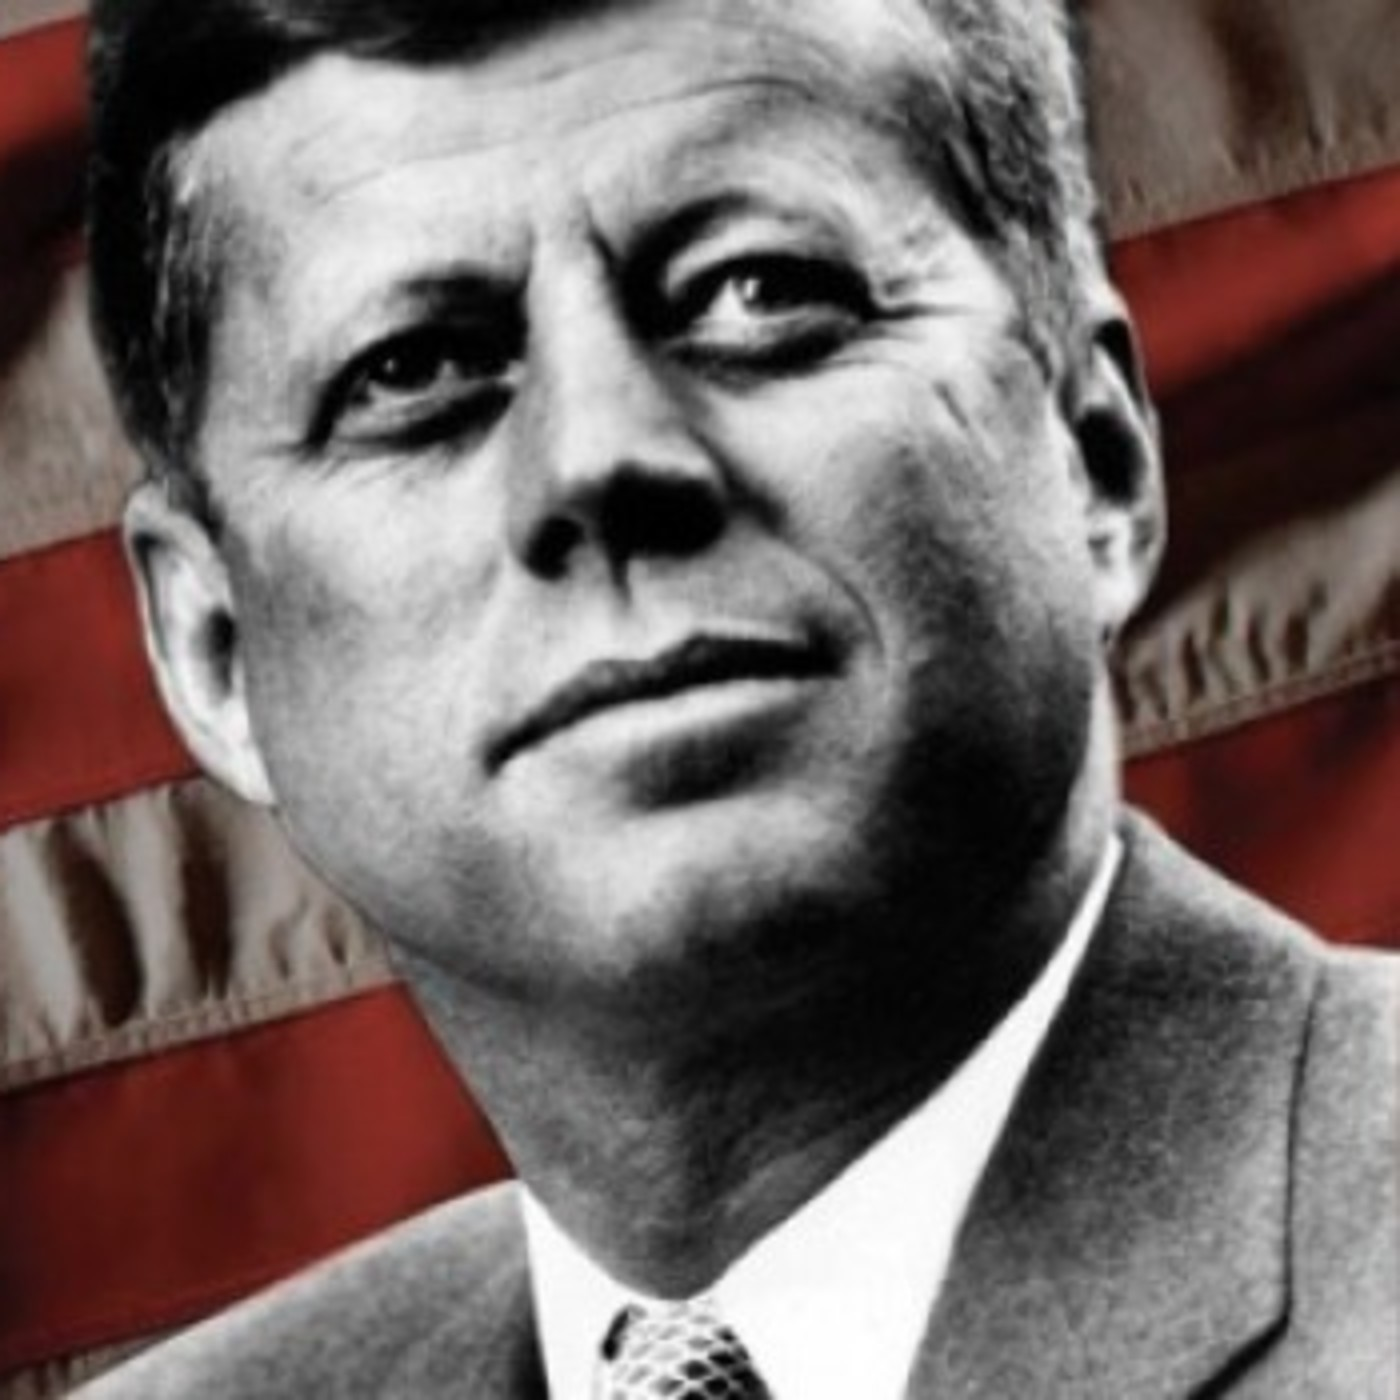 john f kennedys inaugural address essay Free essay: overflowing with vivid tropes and other satisfying discourse, john f kennedy's inaugural address plays to an irrefutably pleasant melody.